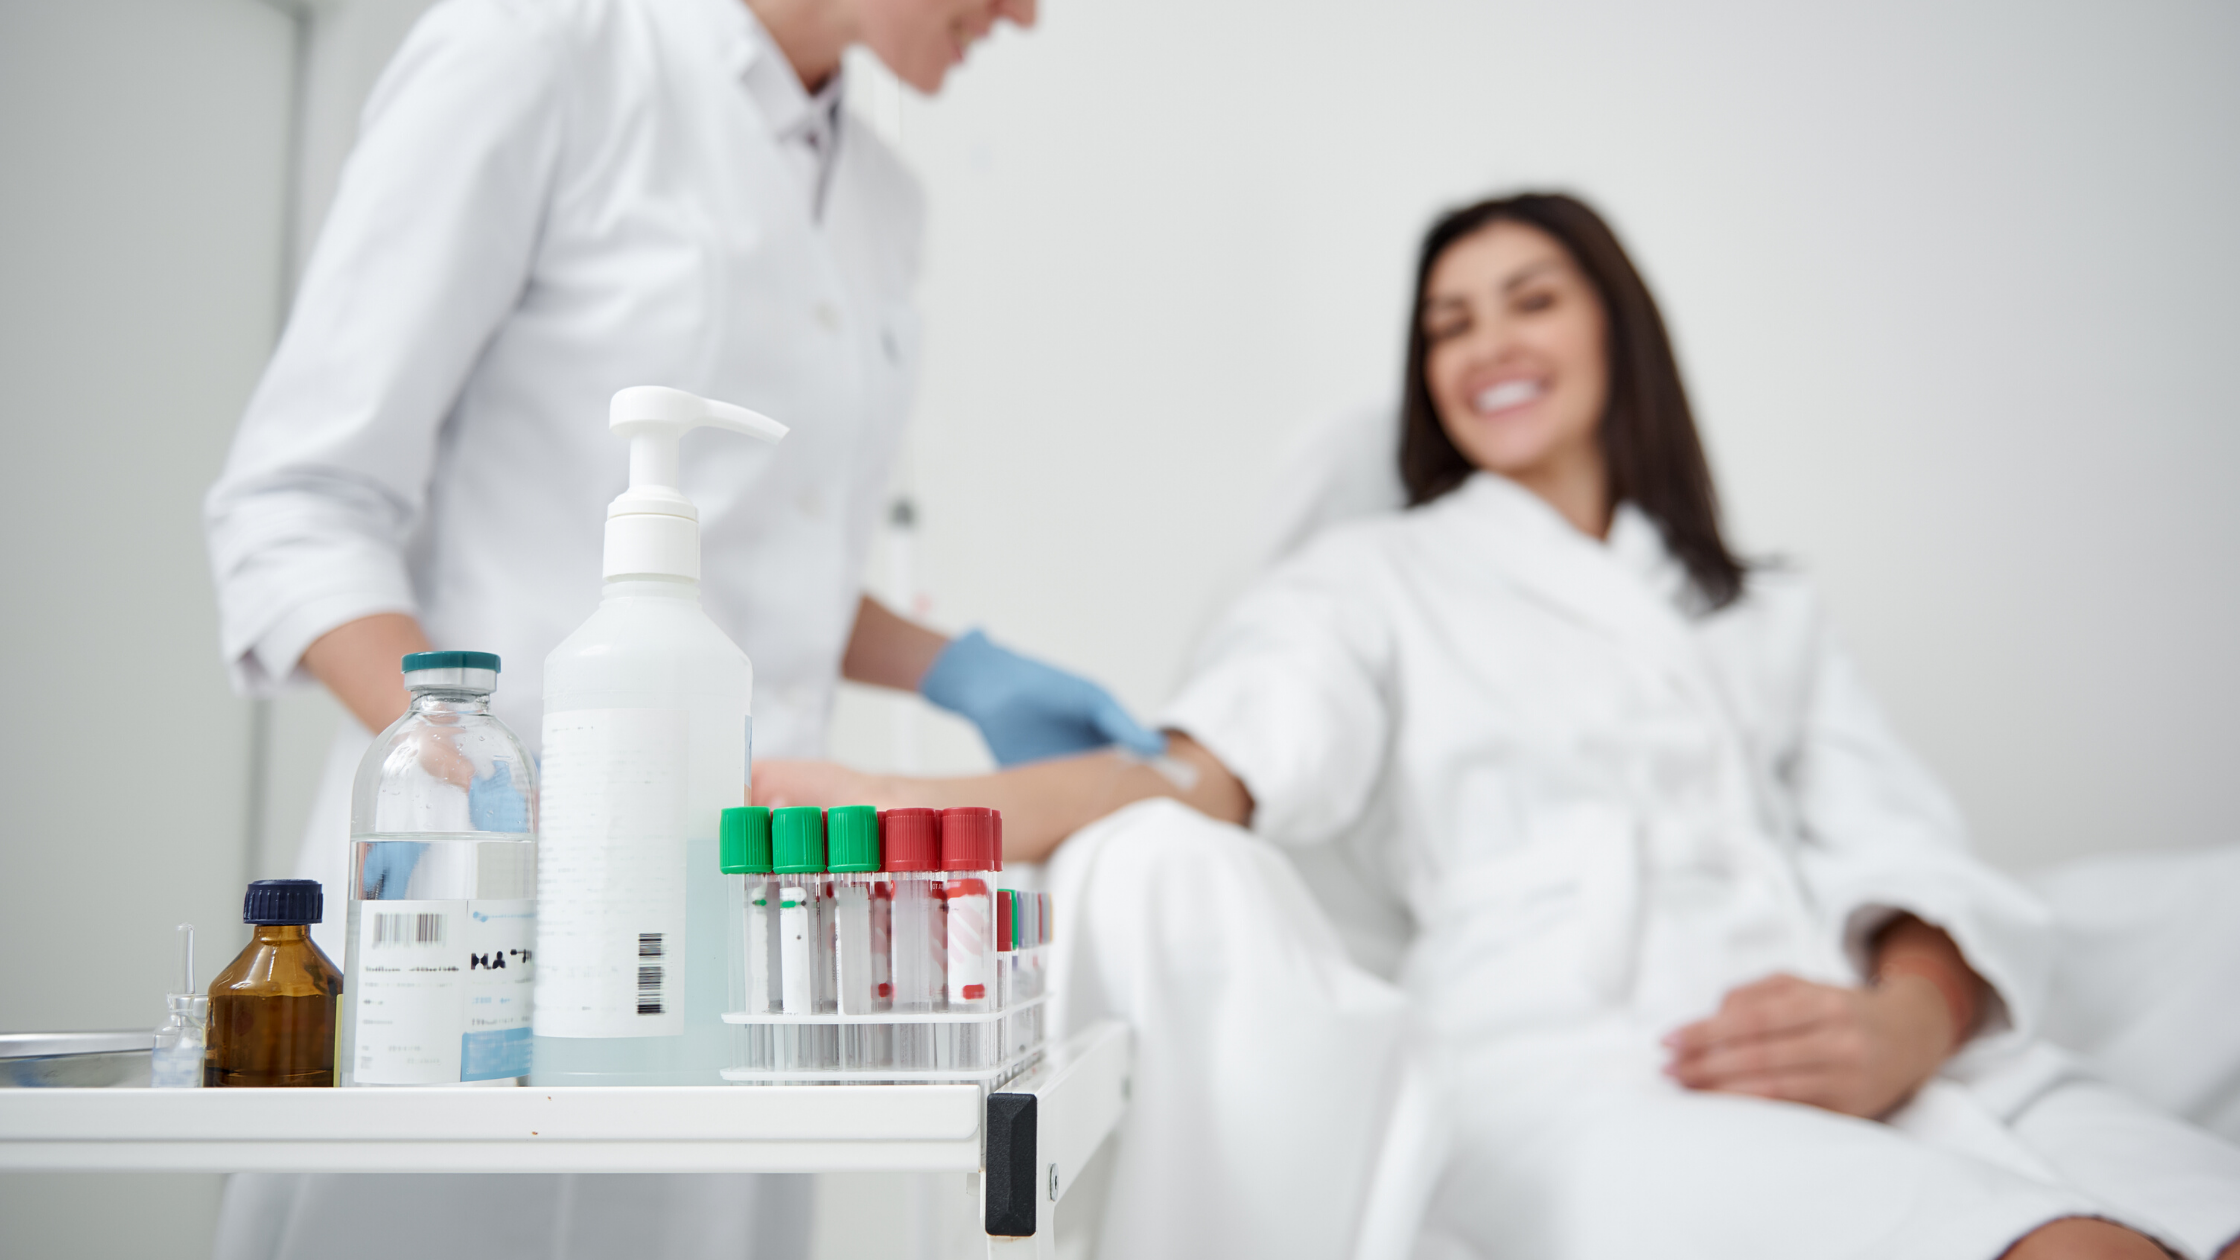 Vitamin IV therapy in Kansas City | IV infusions of key vitamins and nutrients help you combat a number of issues and conditions.